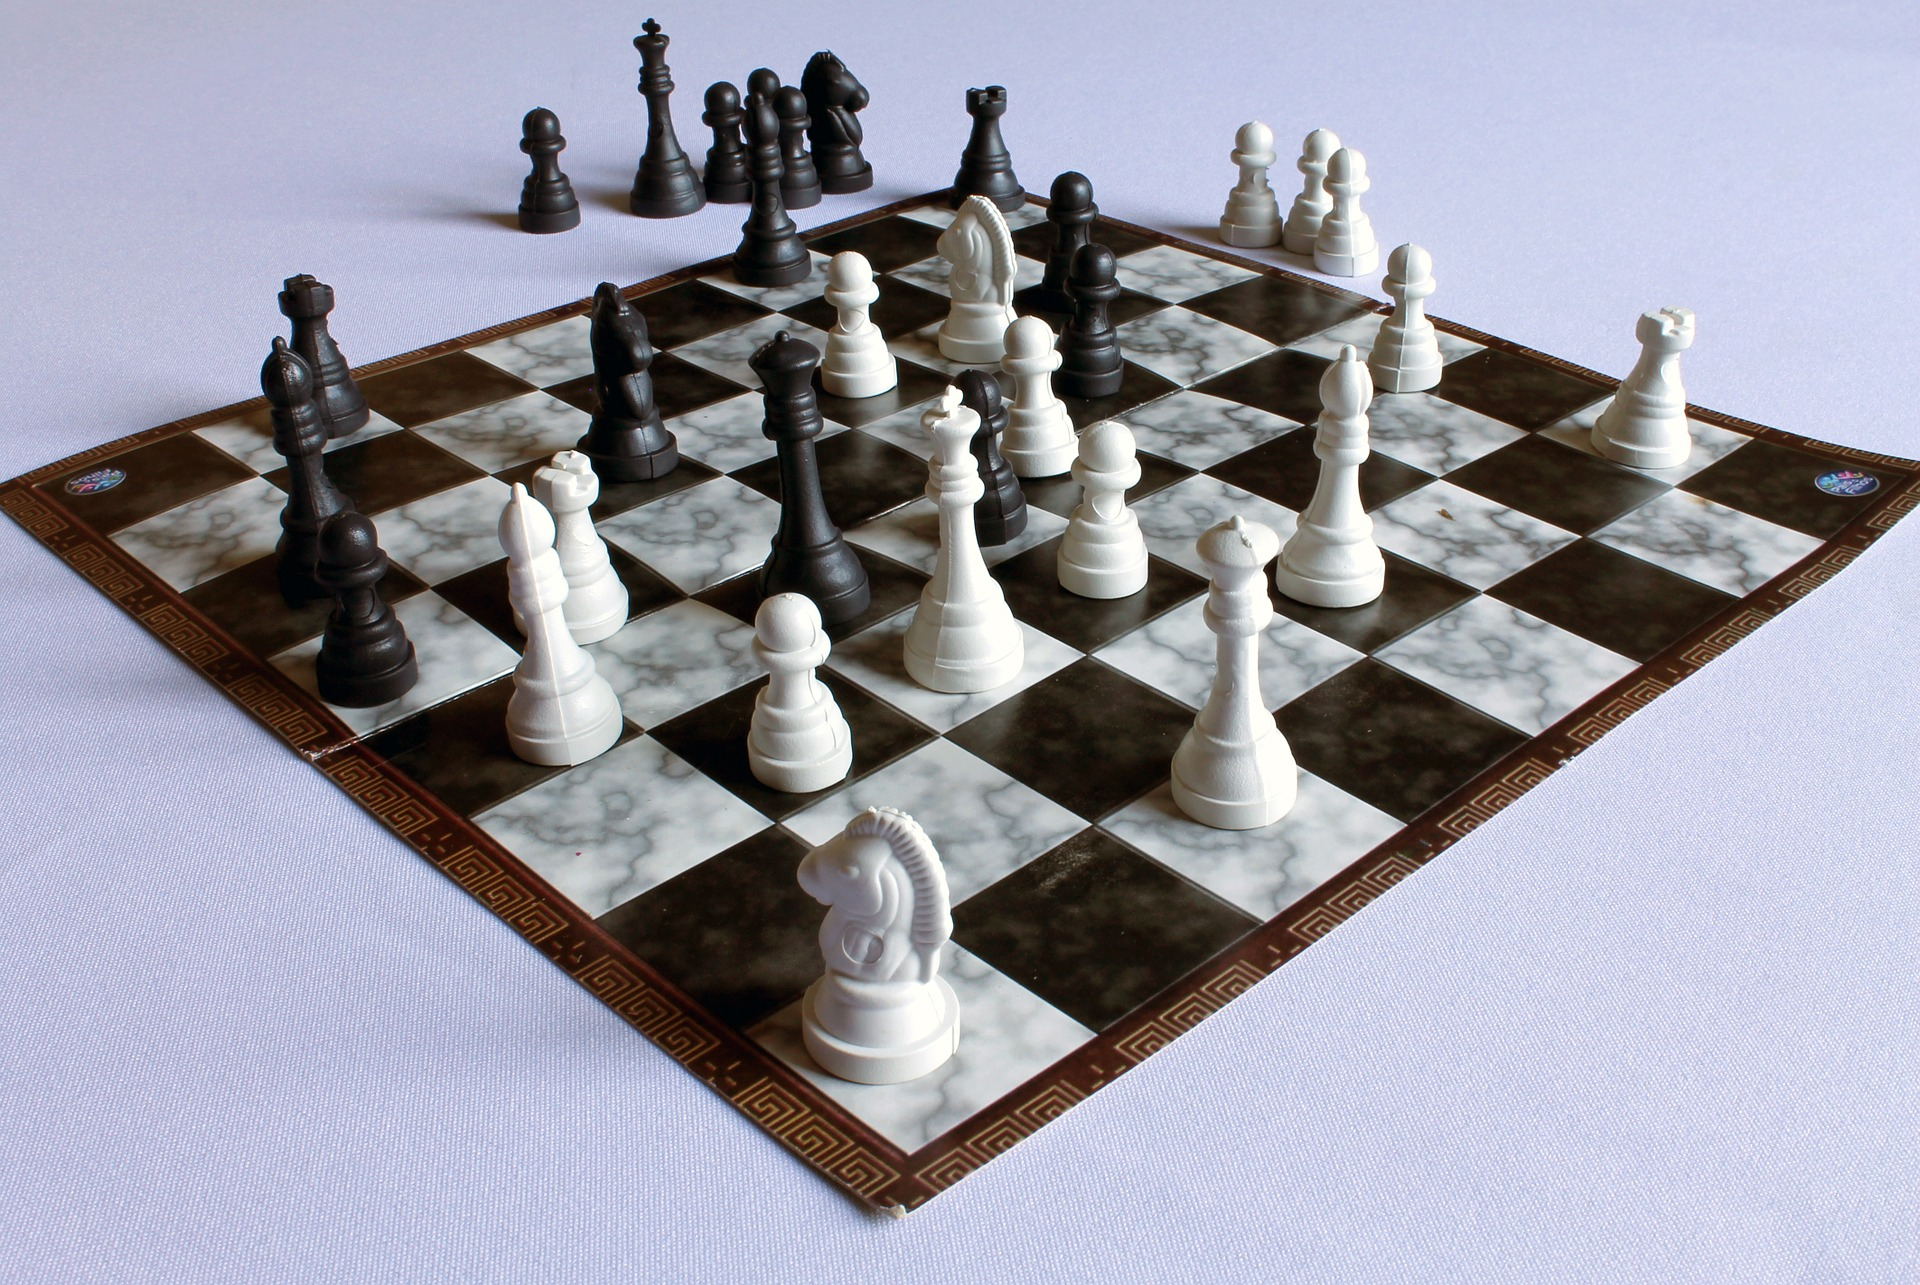 The Essential Elements of the Game of Chess